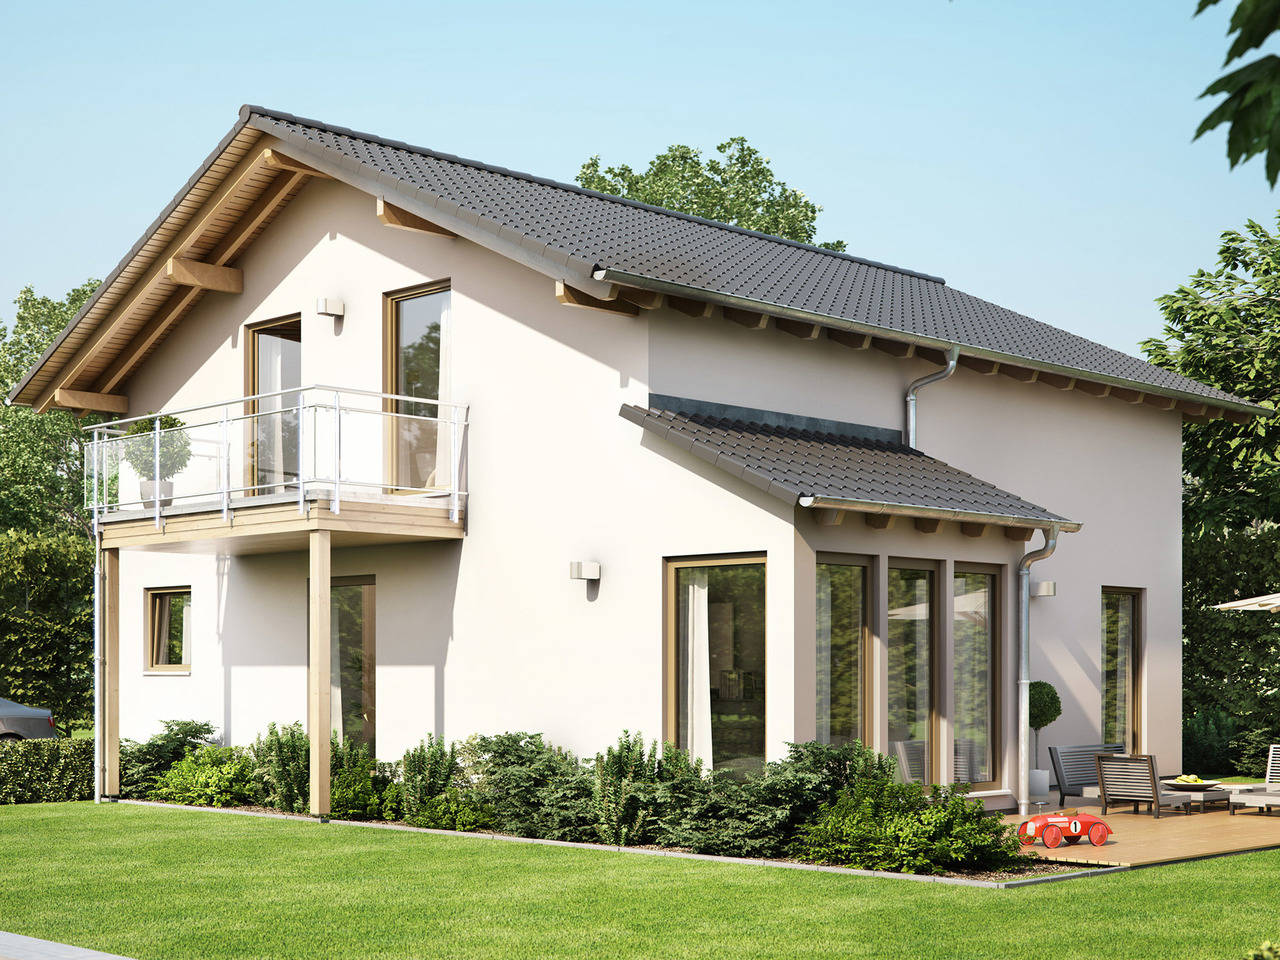 Haus SOLUTION 151 V6 von Living Haus